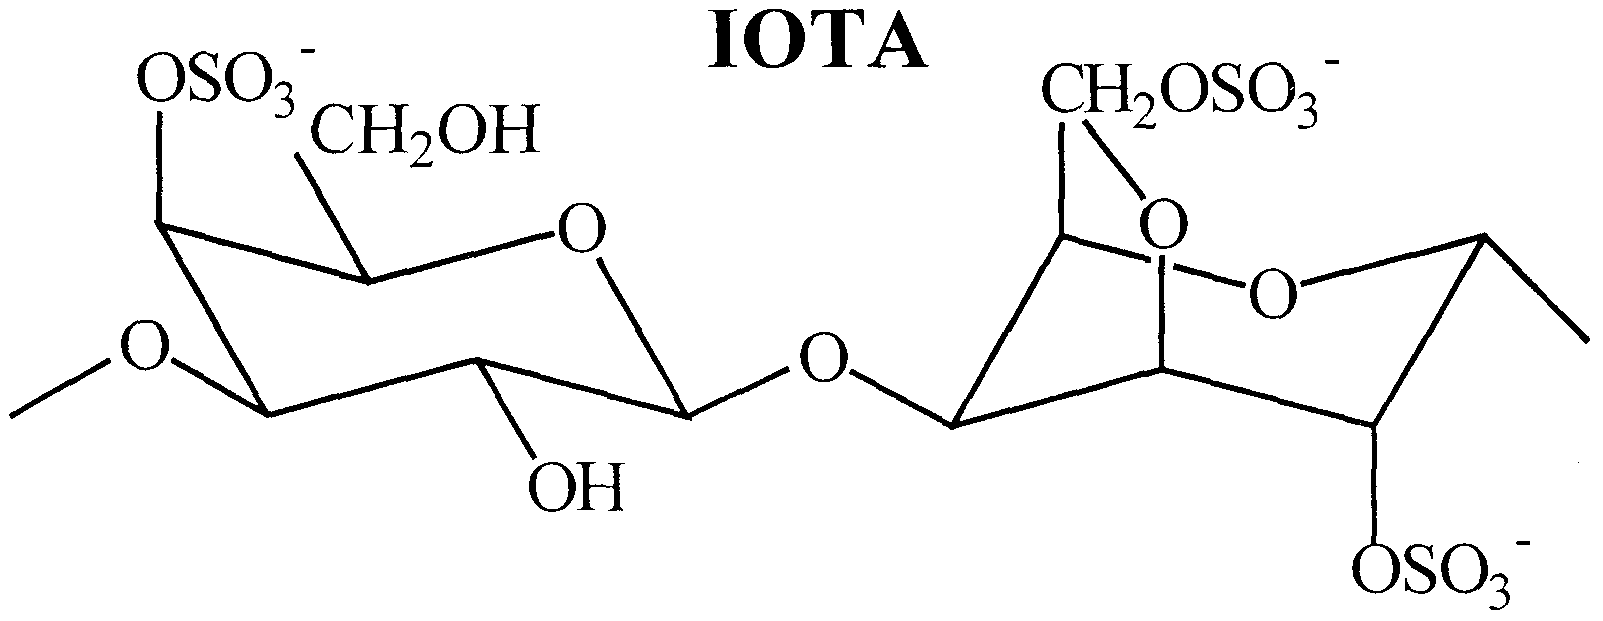 the characteristics and use of carrageenans Biomacromolecules 2007, 8, 729-736 729 interactions between carrageenans and milk proteins.